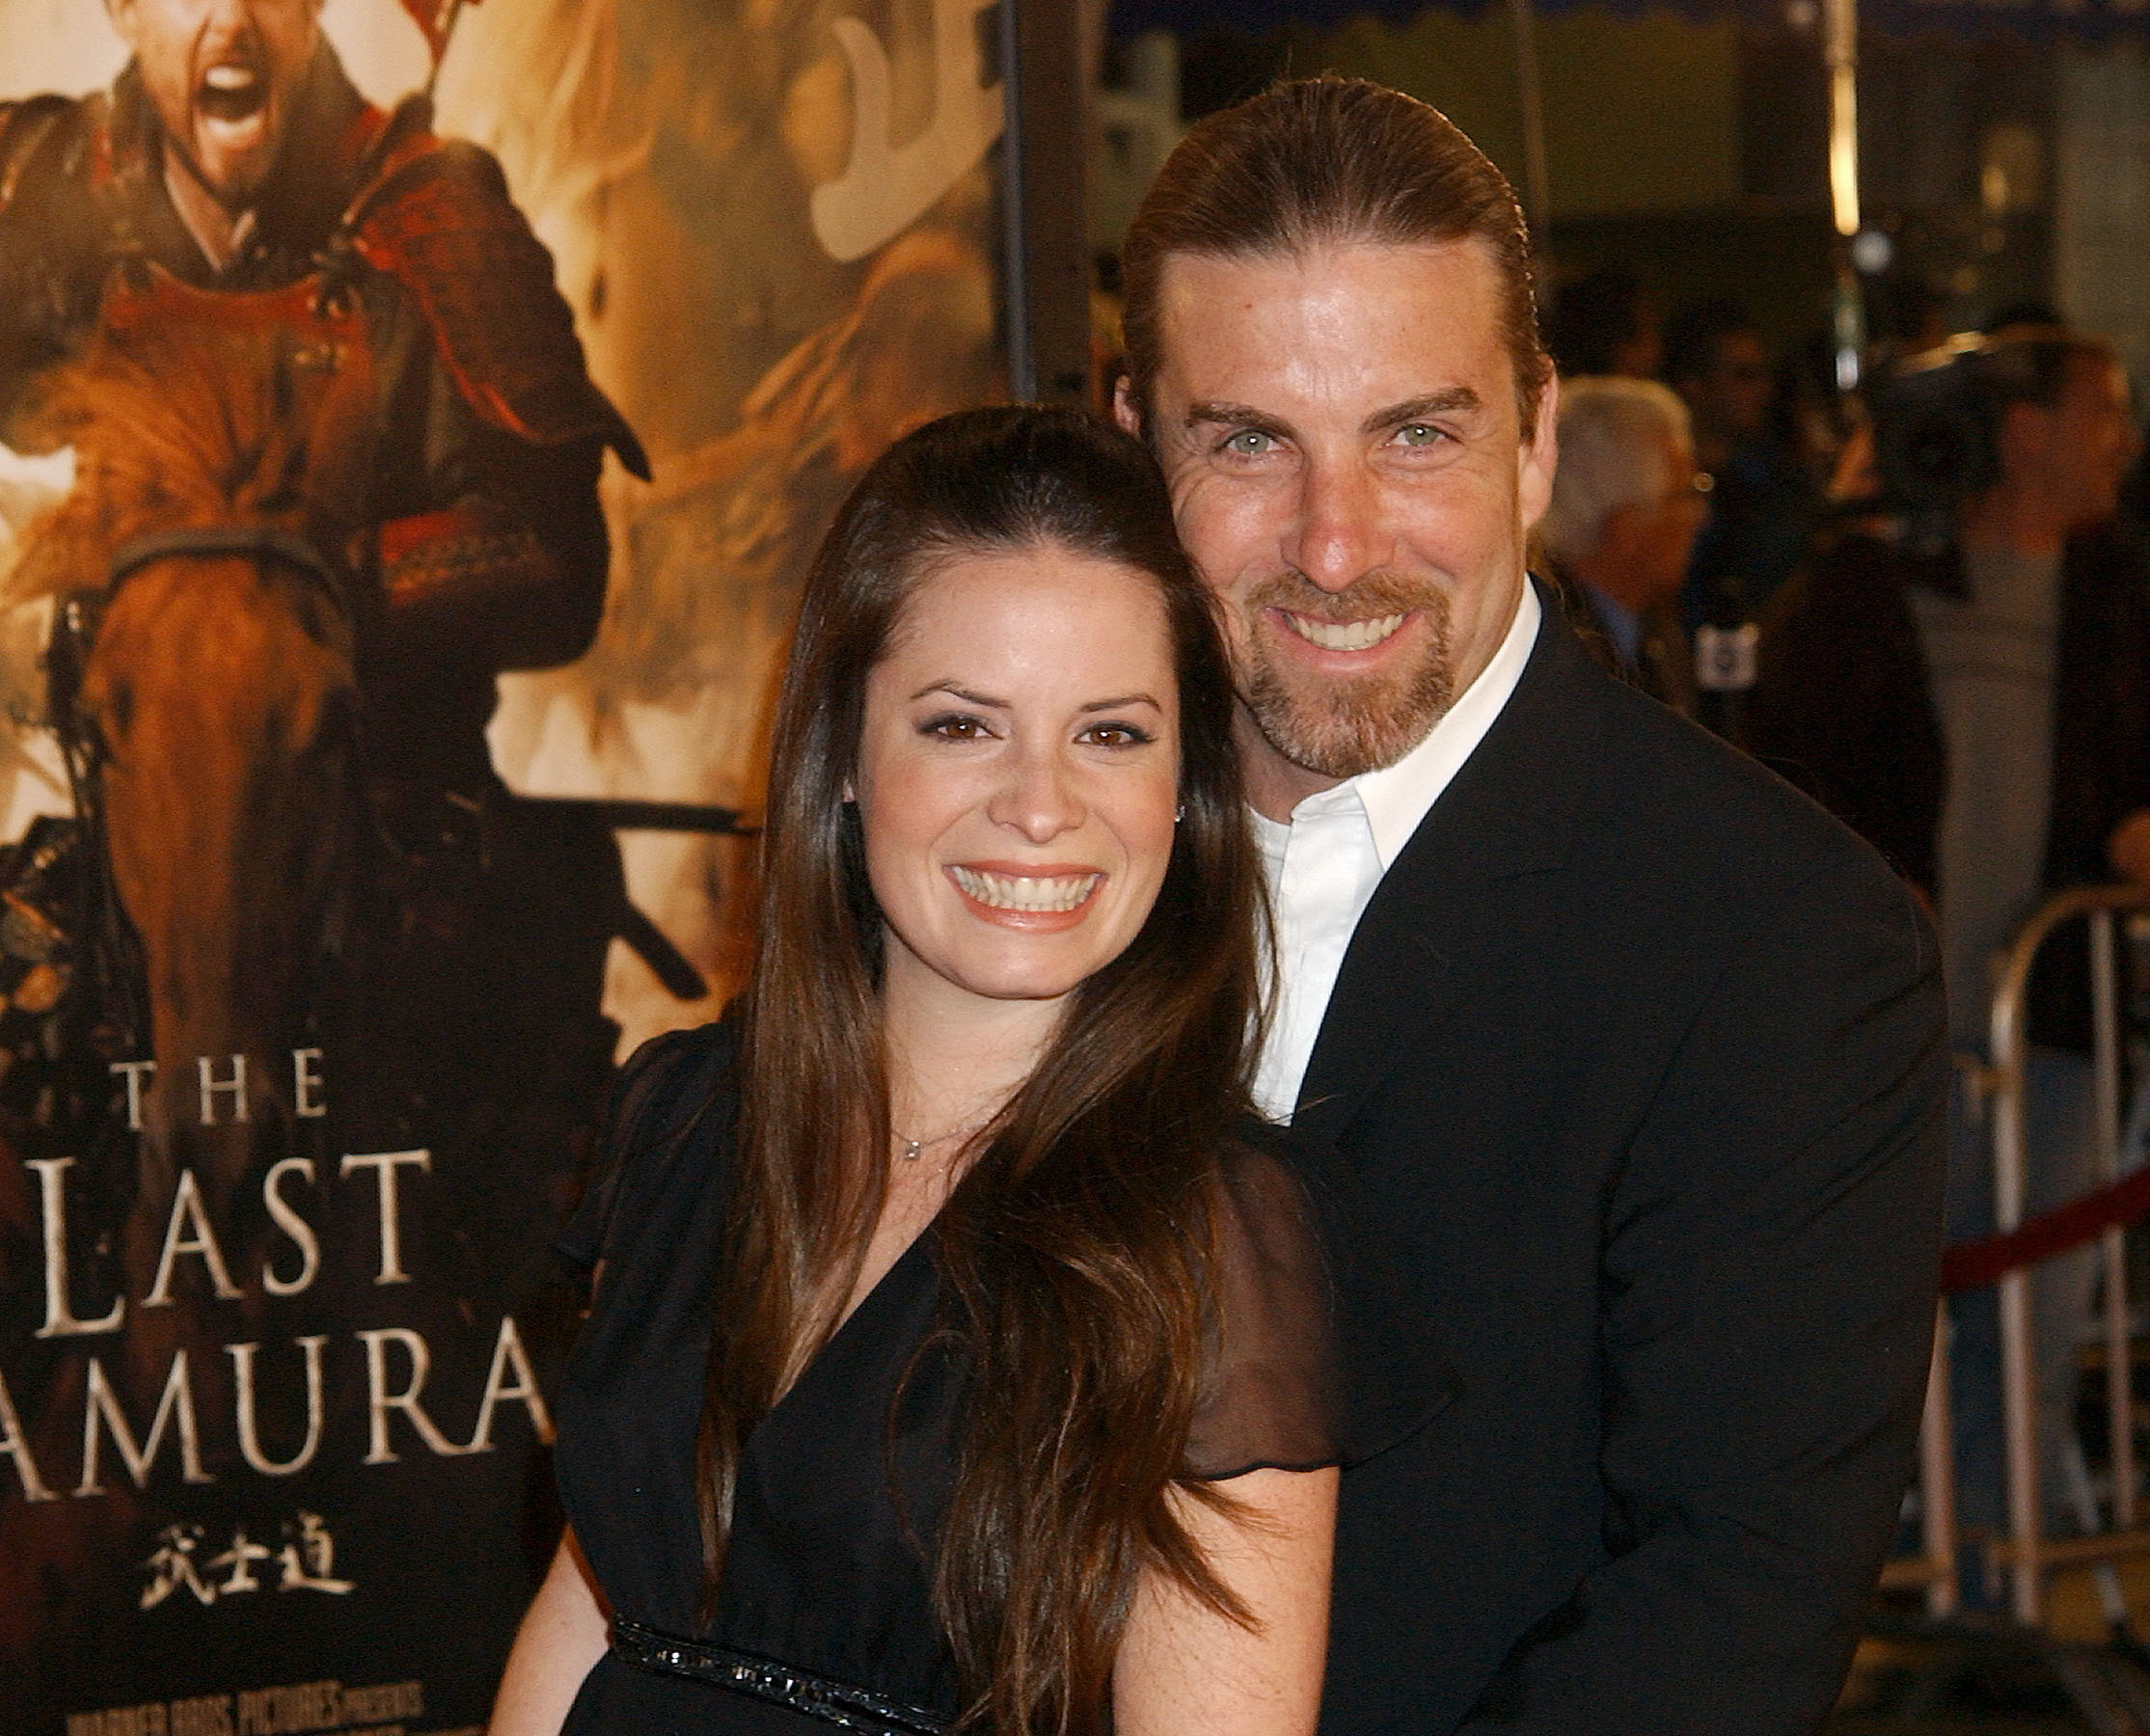 Who is holly marie combs married to